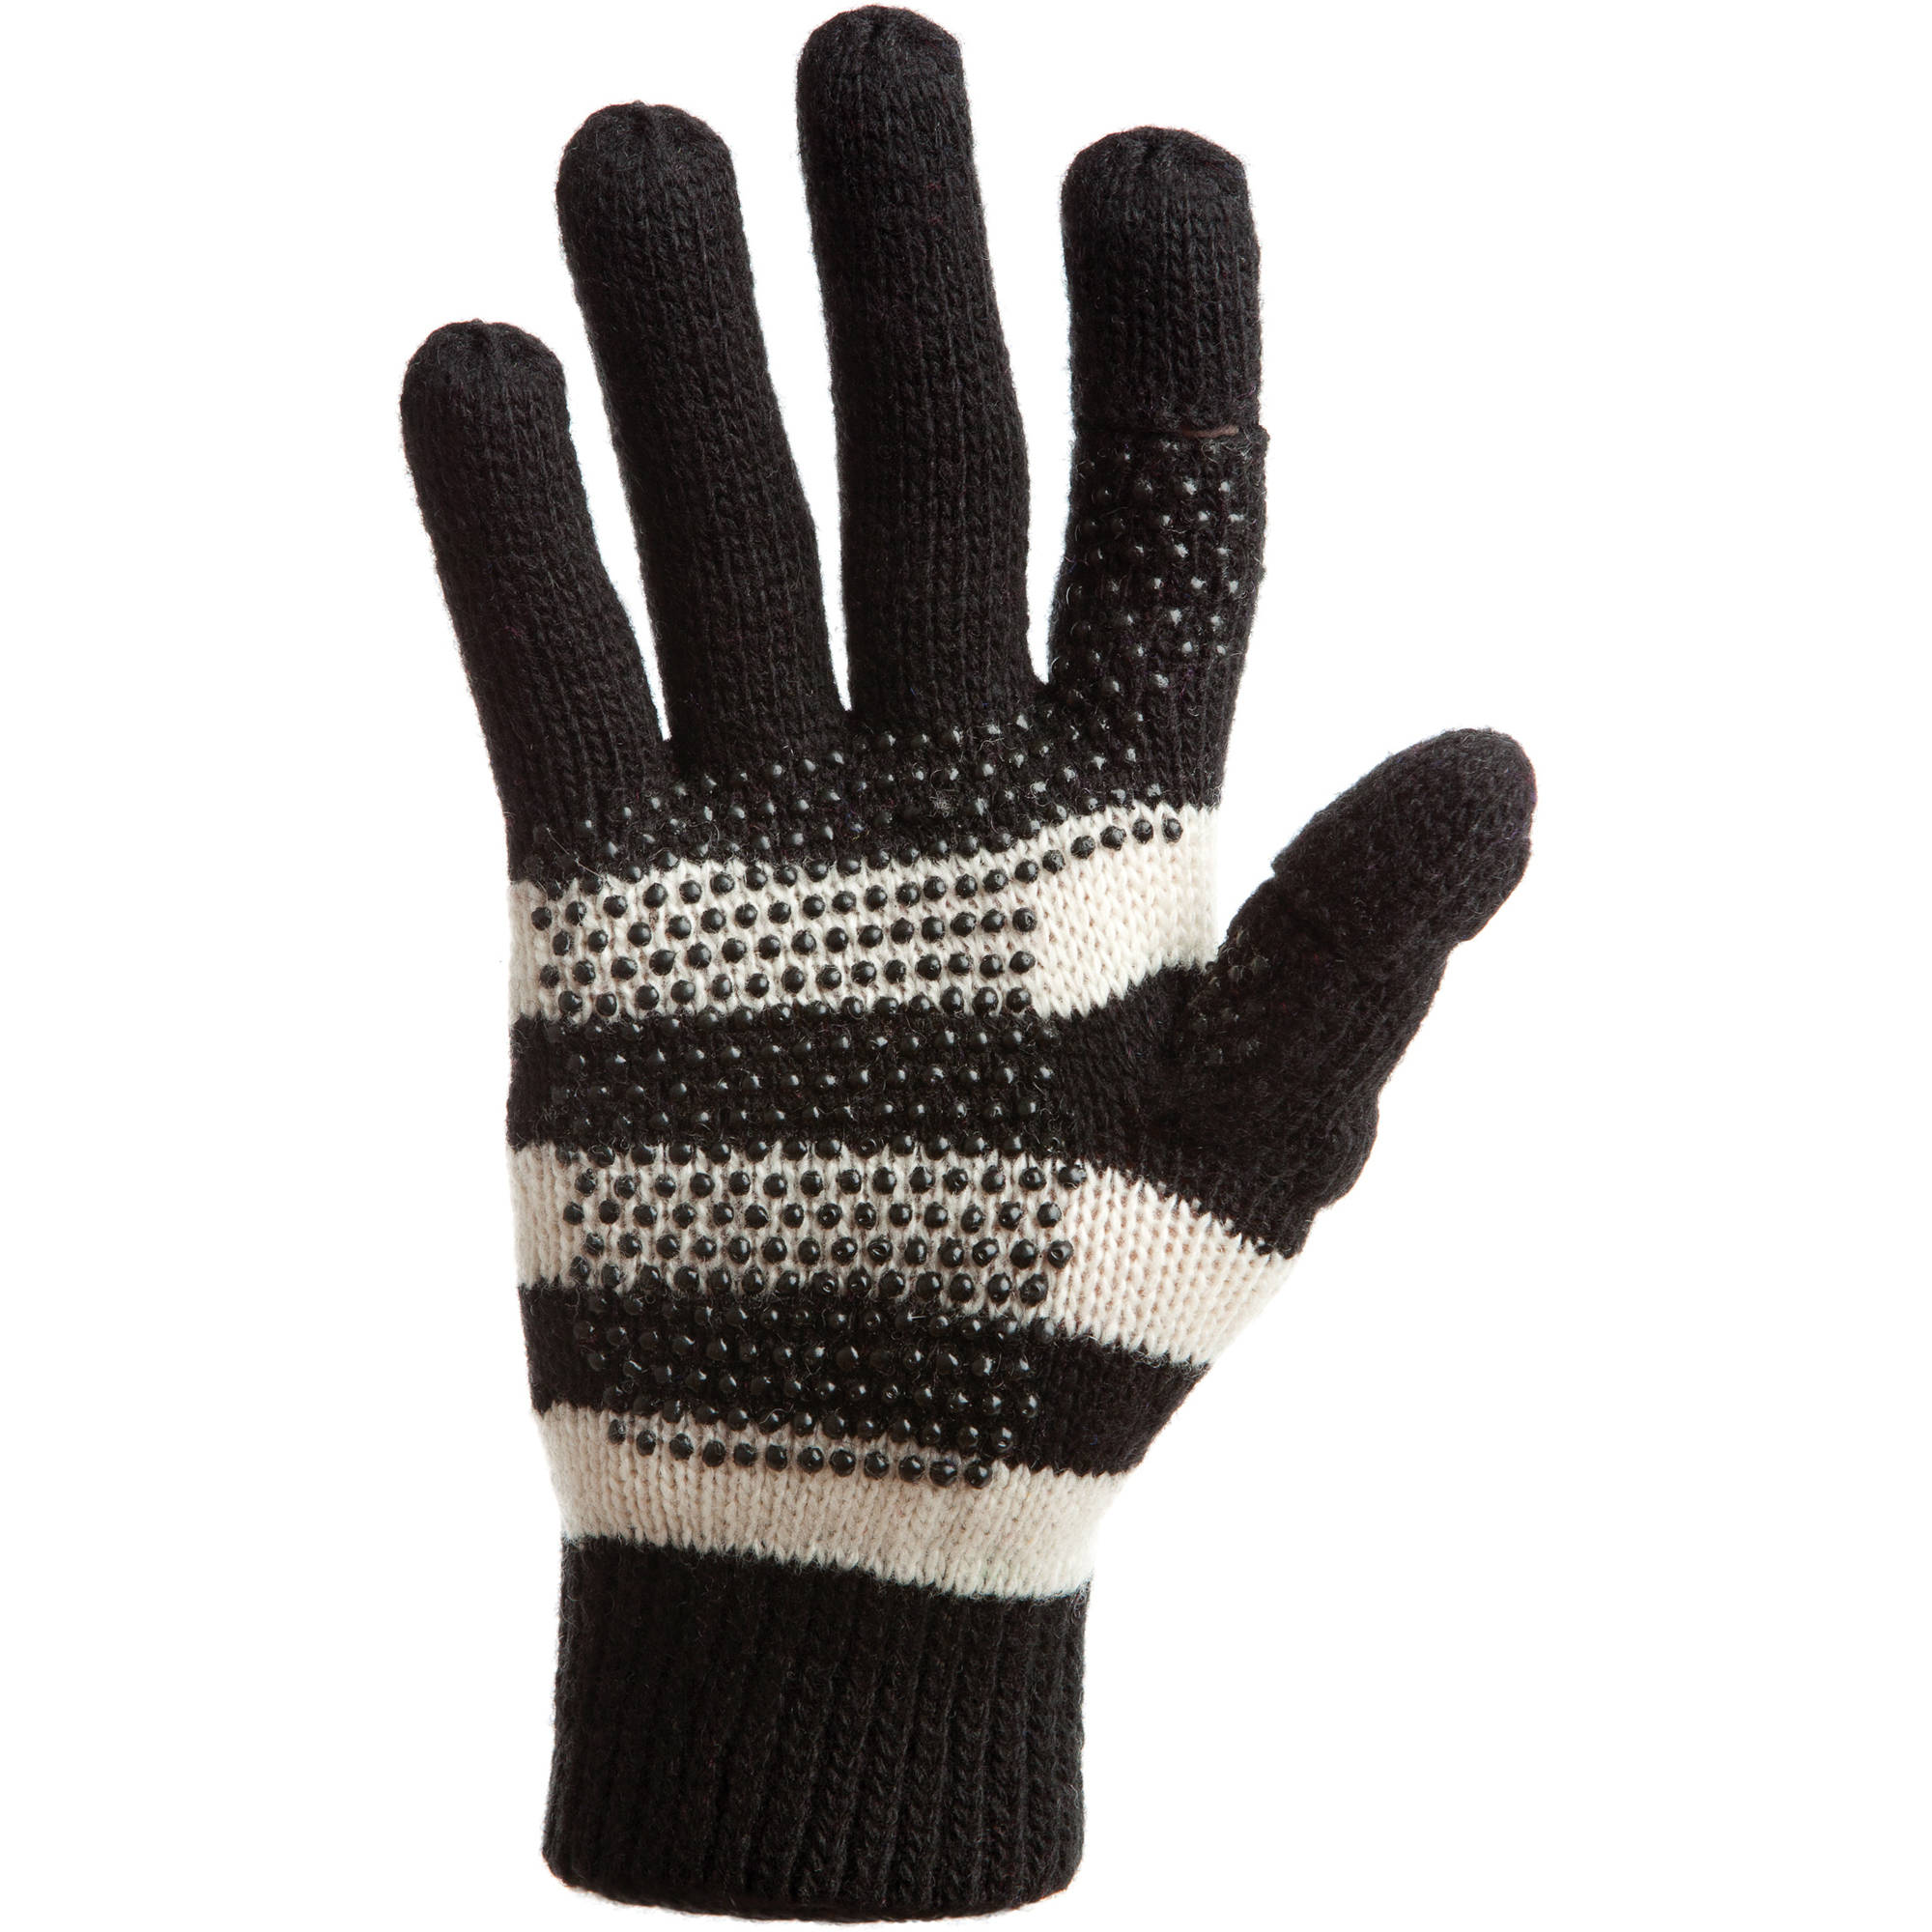 Womens Leather Glove s-Fitbest Women's Leather Glove s Touchscreen Texting Genuine Leather Glove Winter Warm Simple Plain Cashmere & Wool Blend Lined Glove s Product - CONDOR 3AP36 Glove, Terry Cloth, White, Ladies, Pr, By PTP SUPPLY From USA.